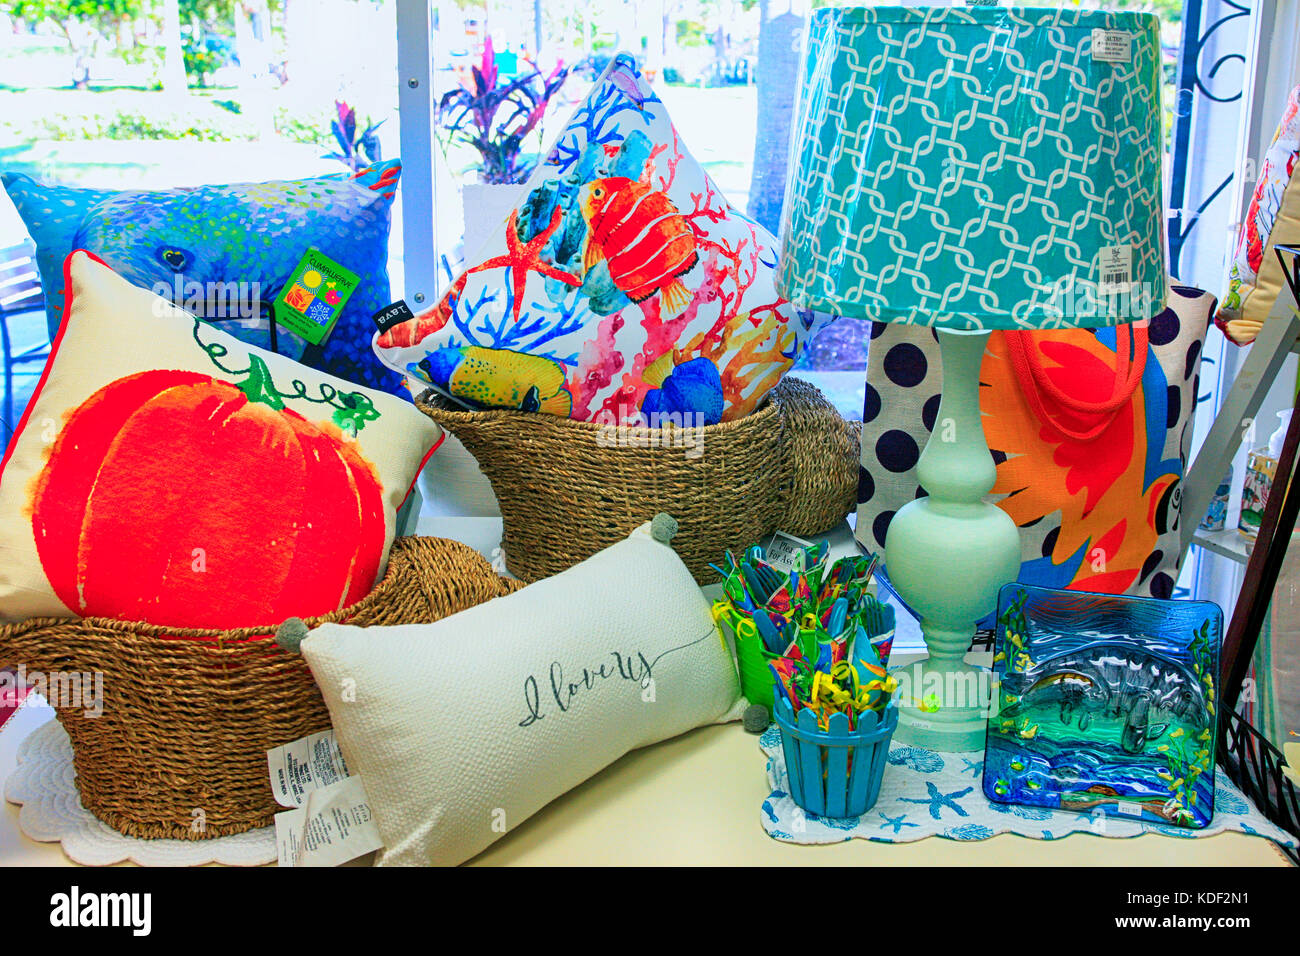 Window display of home decor items on sale in venice FL - Stock Image